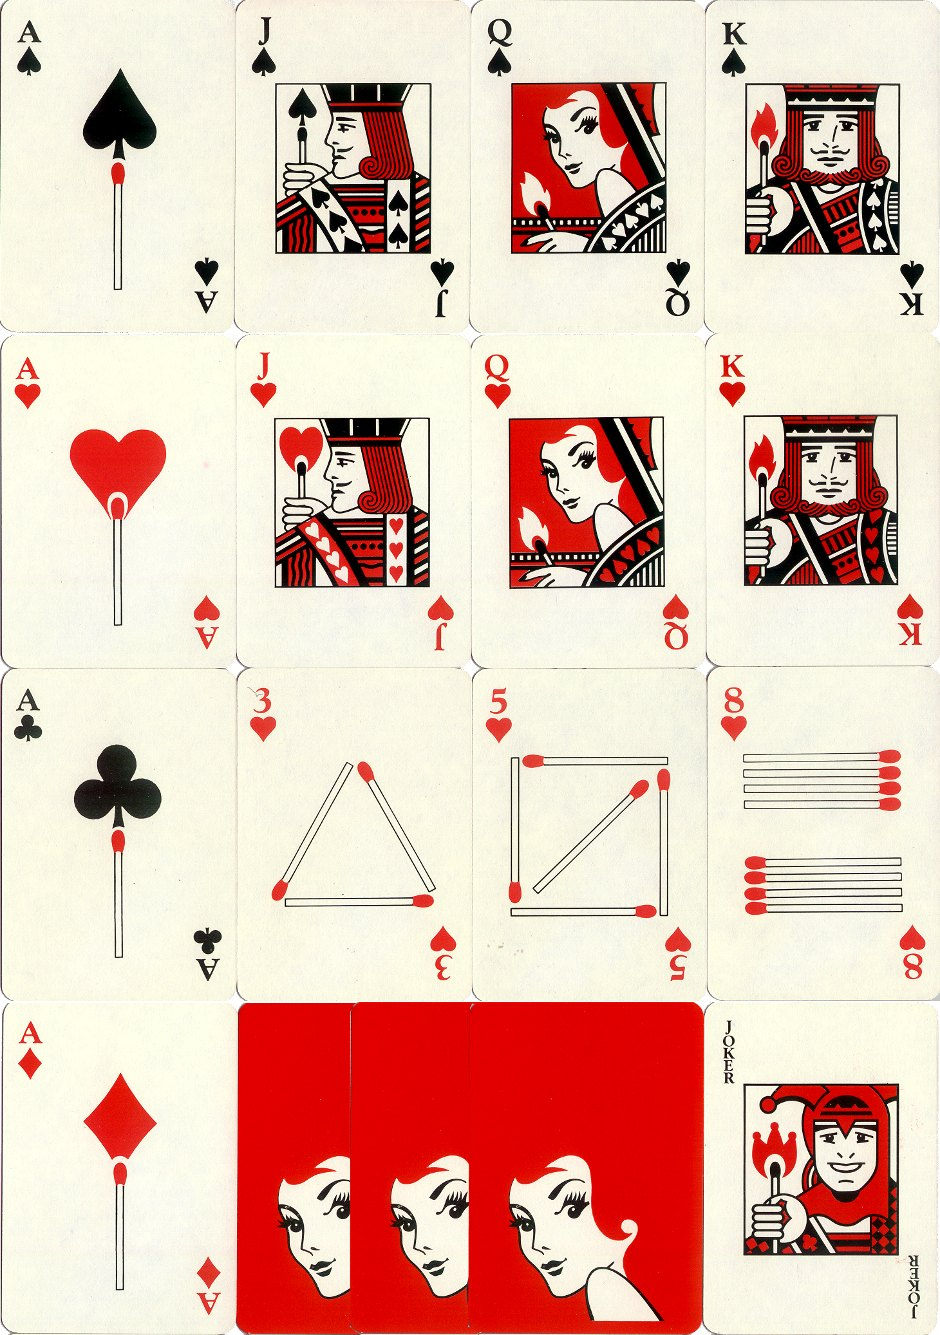 Redheads Match Poker Playing Cards published by Bryant & May, c.1975-80